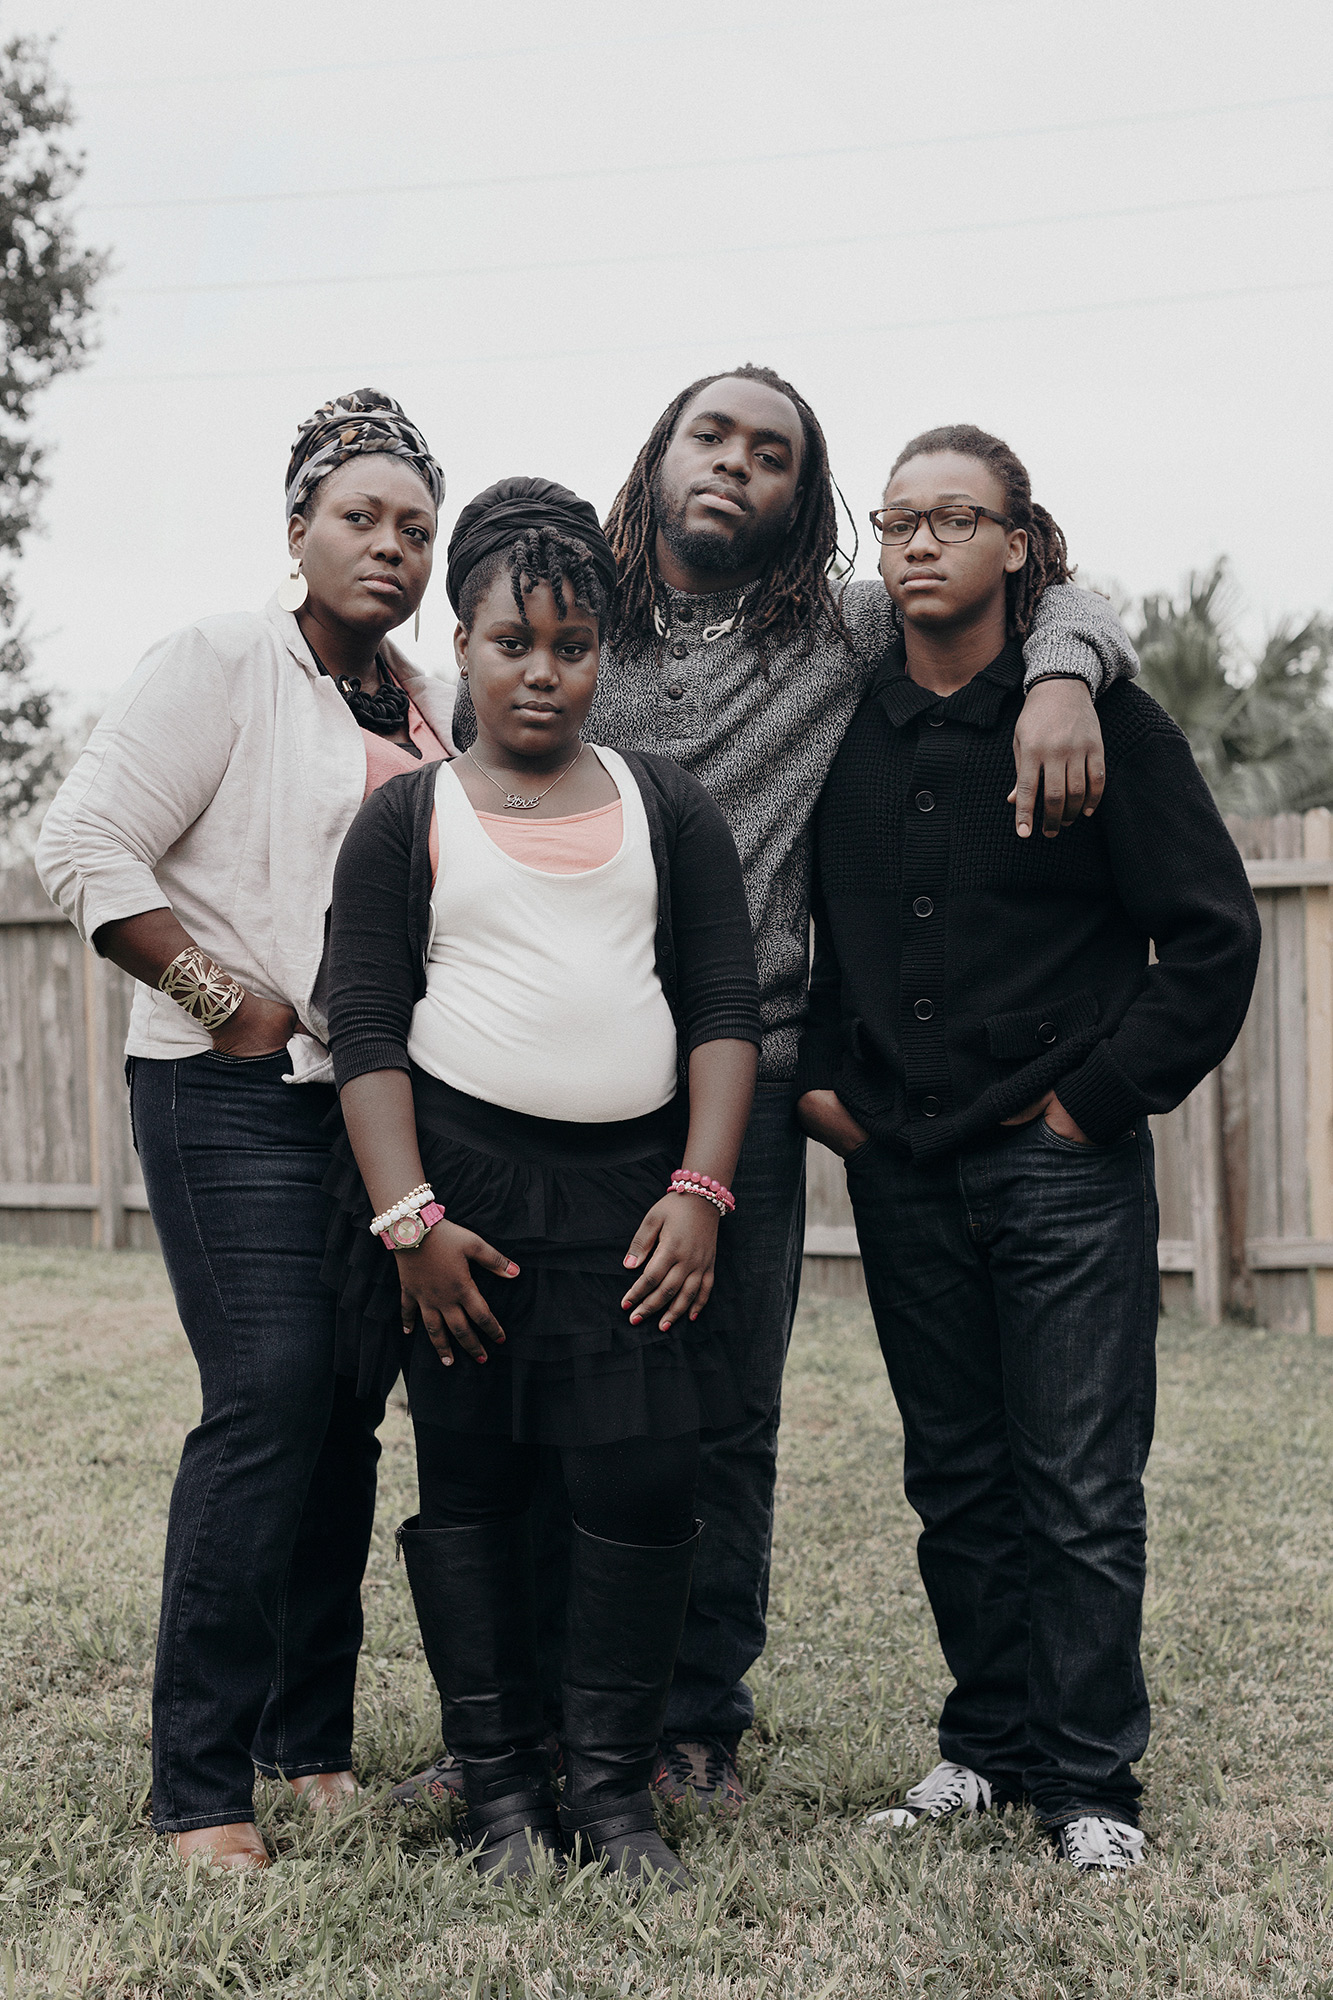 The Simmons family of Texas photographed by editorial photographer, Todd Spoth, at their Sugarland, Texas home.